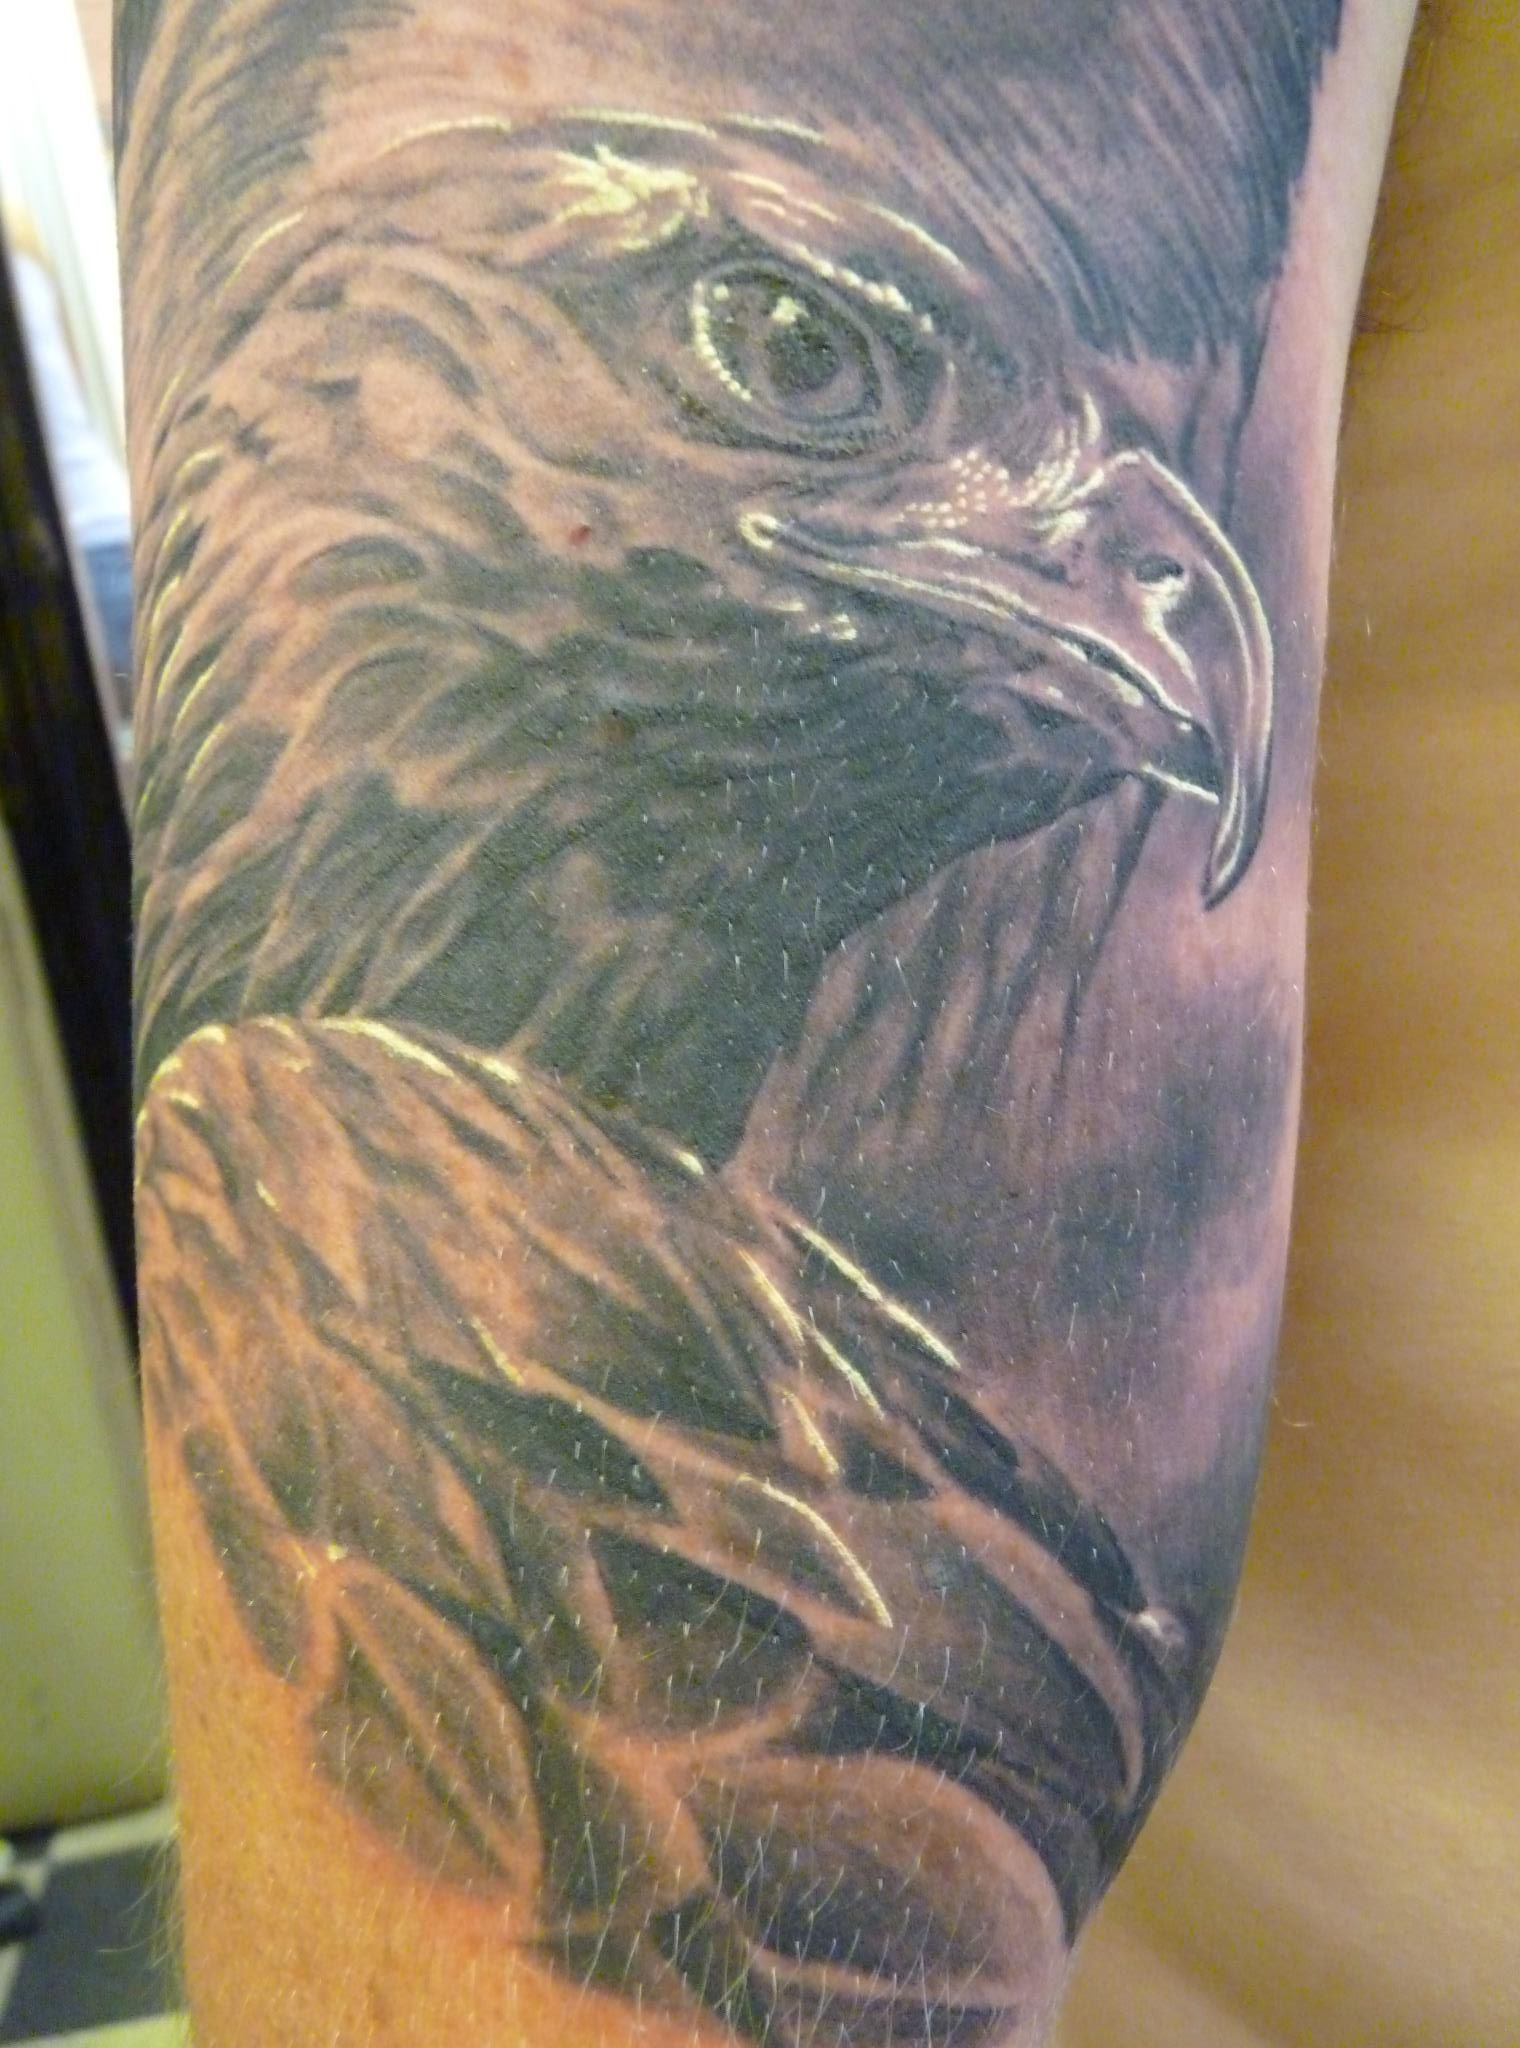 Bird tattoos designs ideas and meaning tattoos for you - Tattoo Eagle Tattoos Designs Ideas And Meaning Tattoos For You